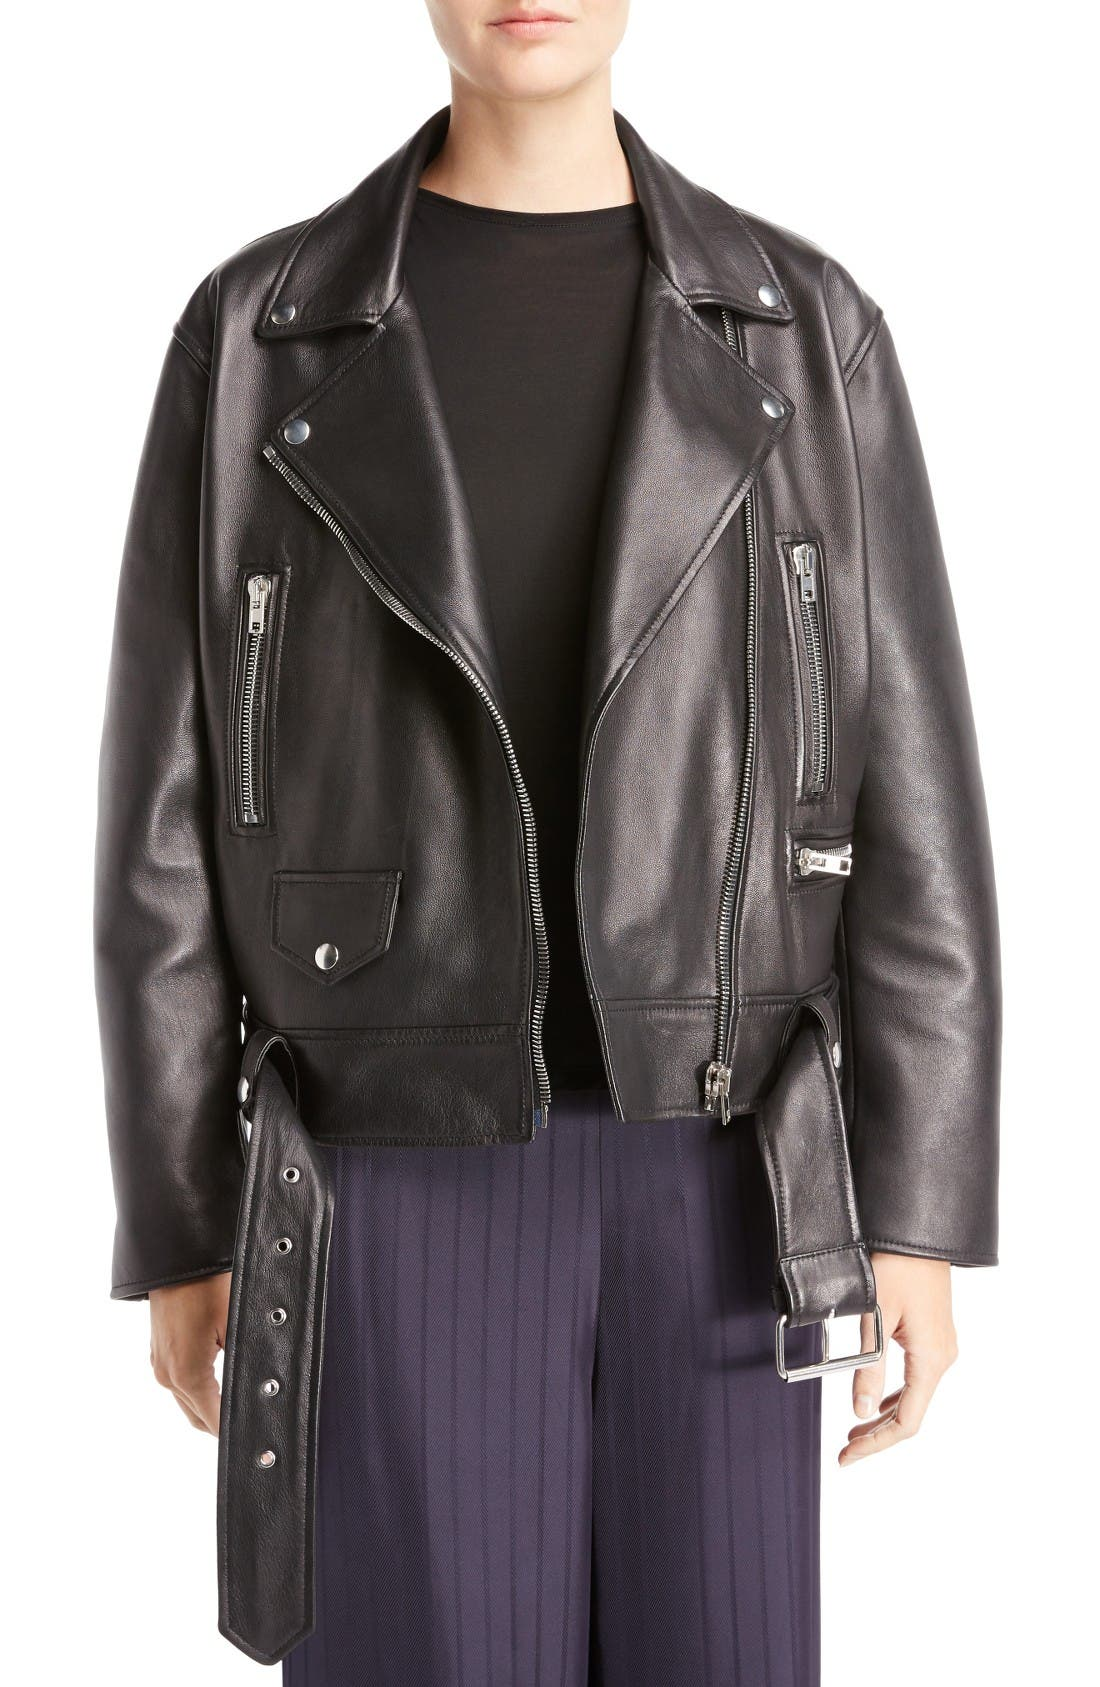 Merlyn Main Jacket,                         Main,                         color, Black